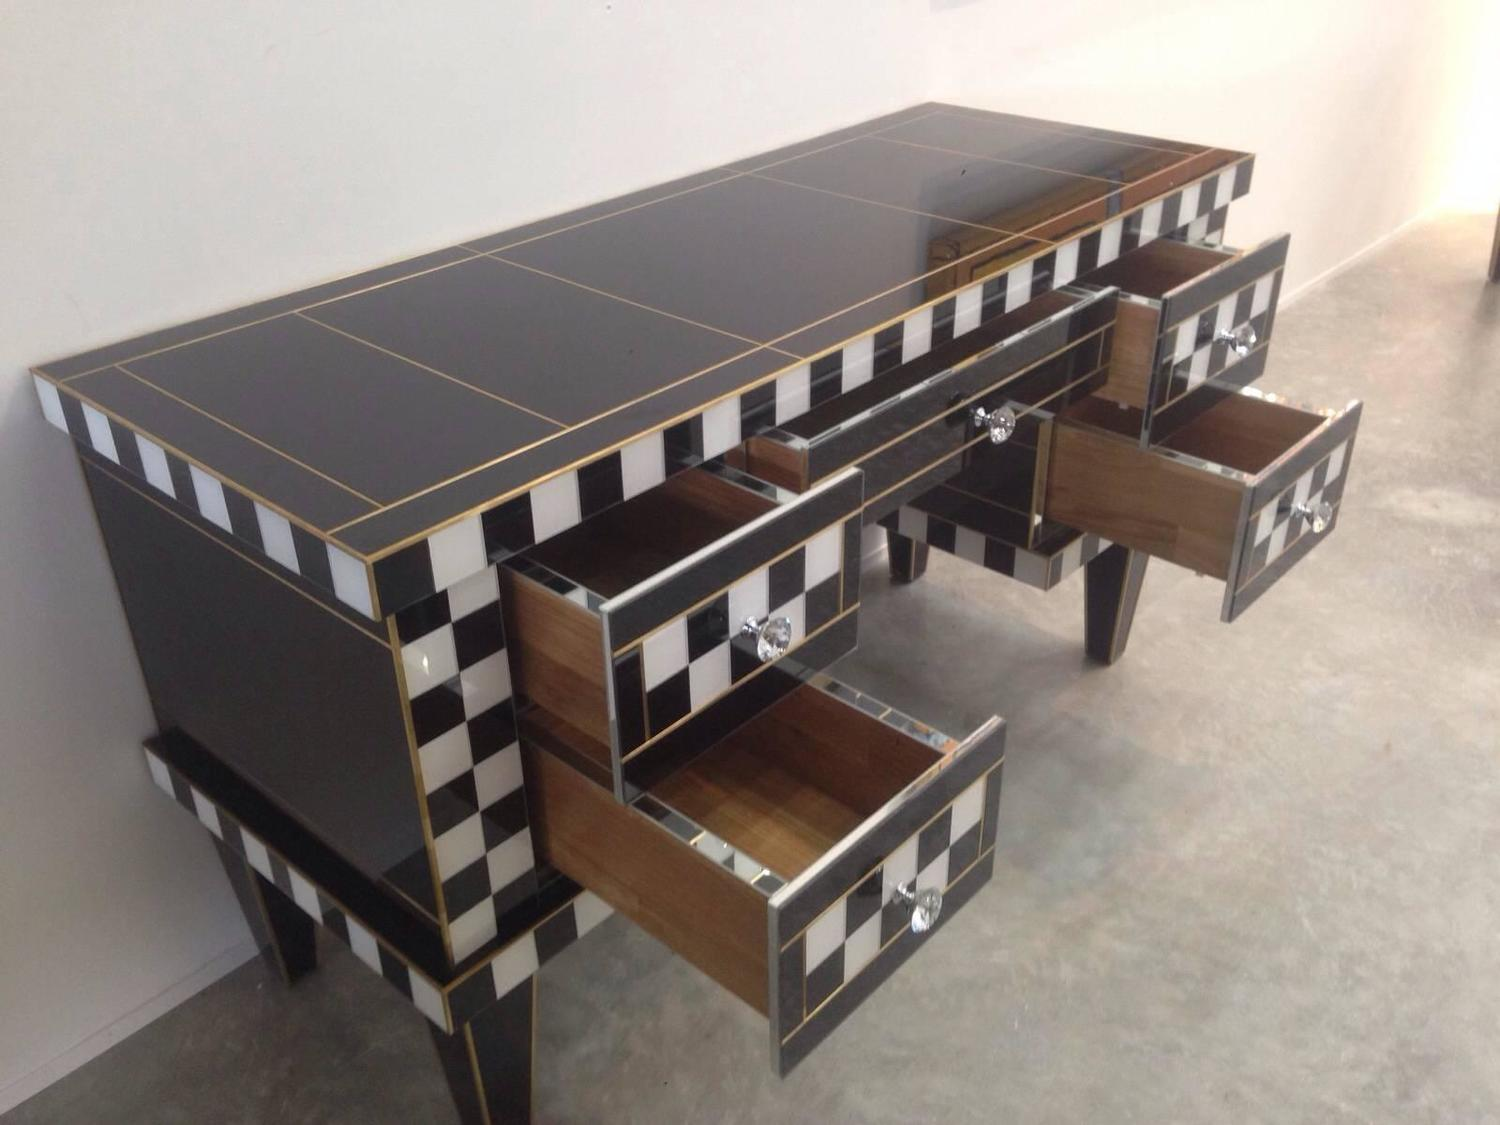 Espectacular Mirrored Desk Commode Vanity Chest Of Drawers At 1stdibs